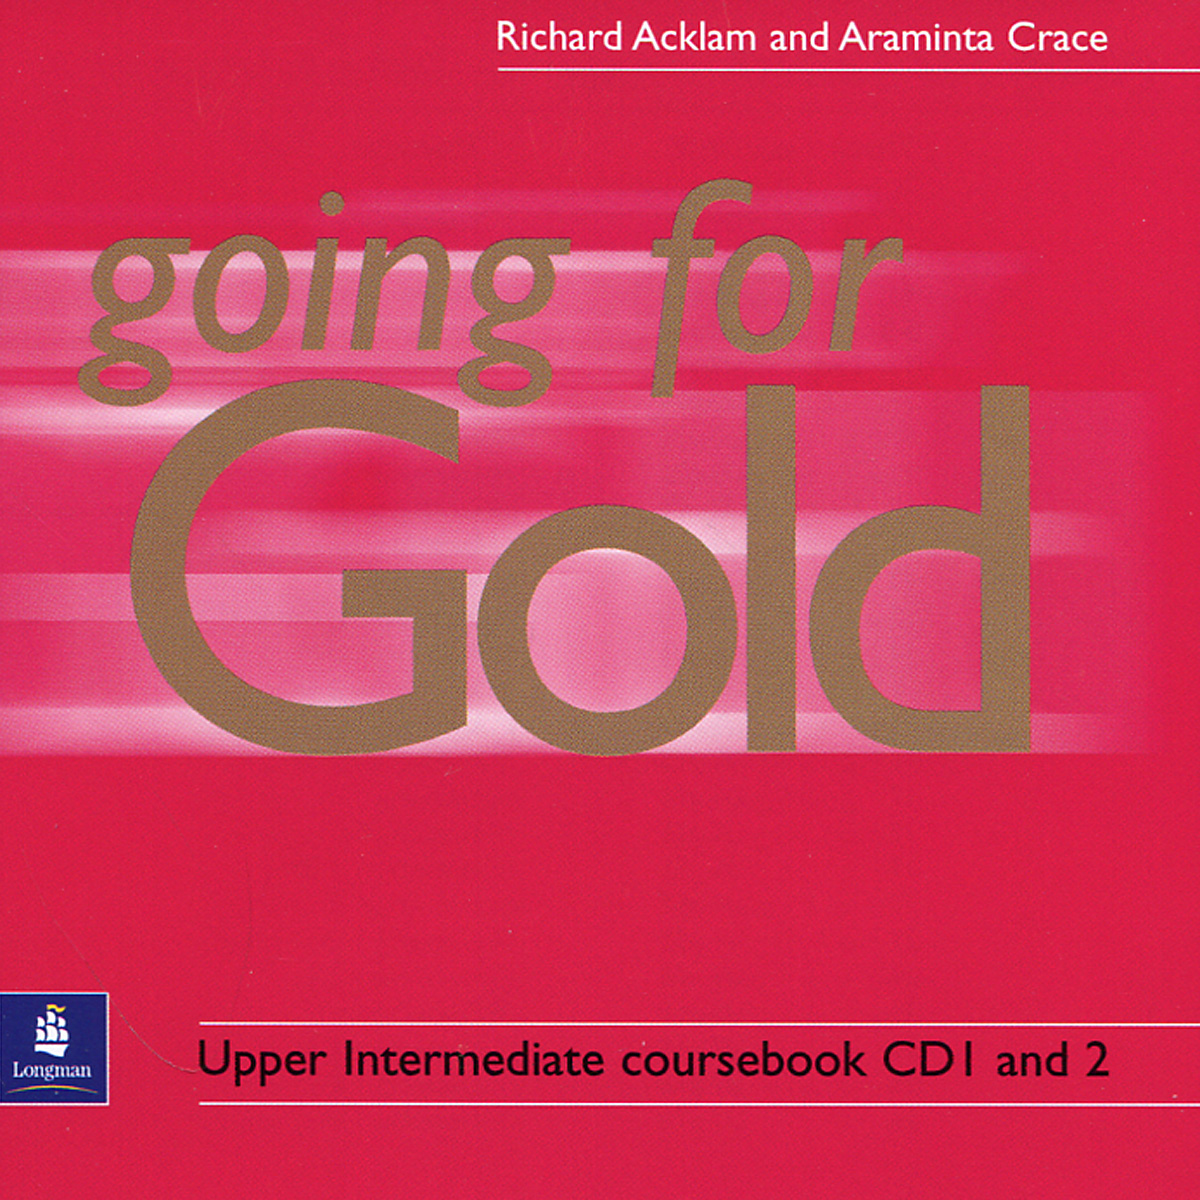 Going for Gold (аудиокурс на 2 CD) new opportunities russian edition upper intermediate аудиокурс на 4 cd